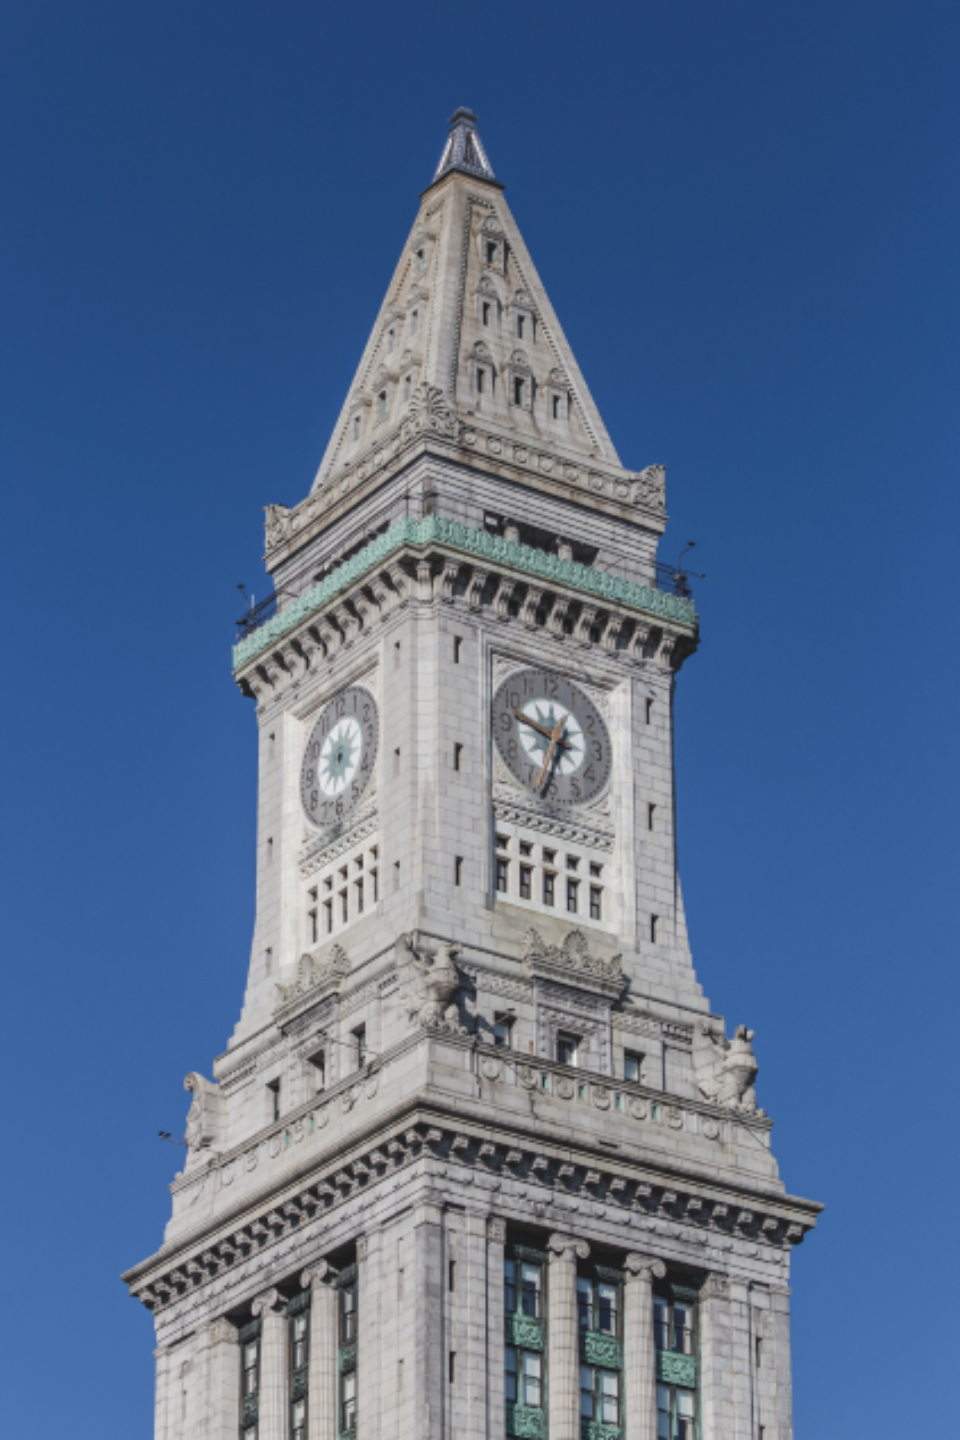 clock tower city ornate building classic landmark timepiece monument time sky tall antique architecture